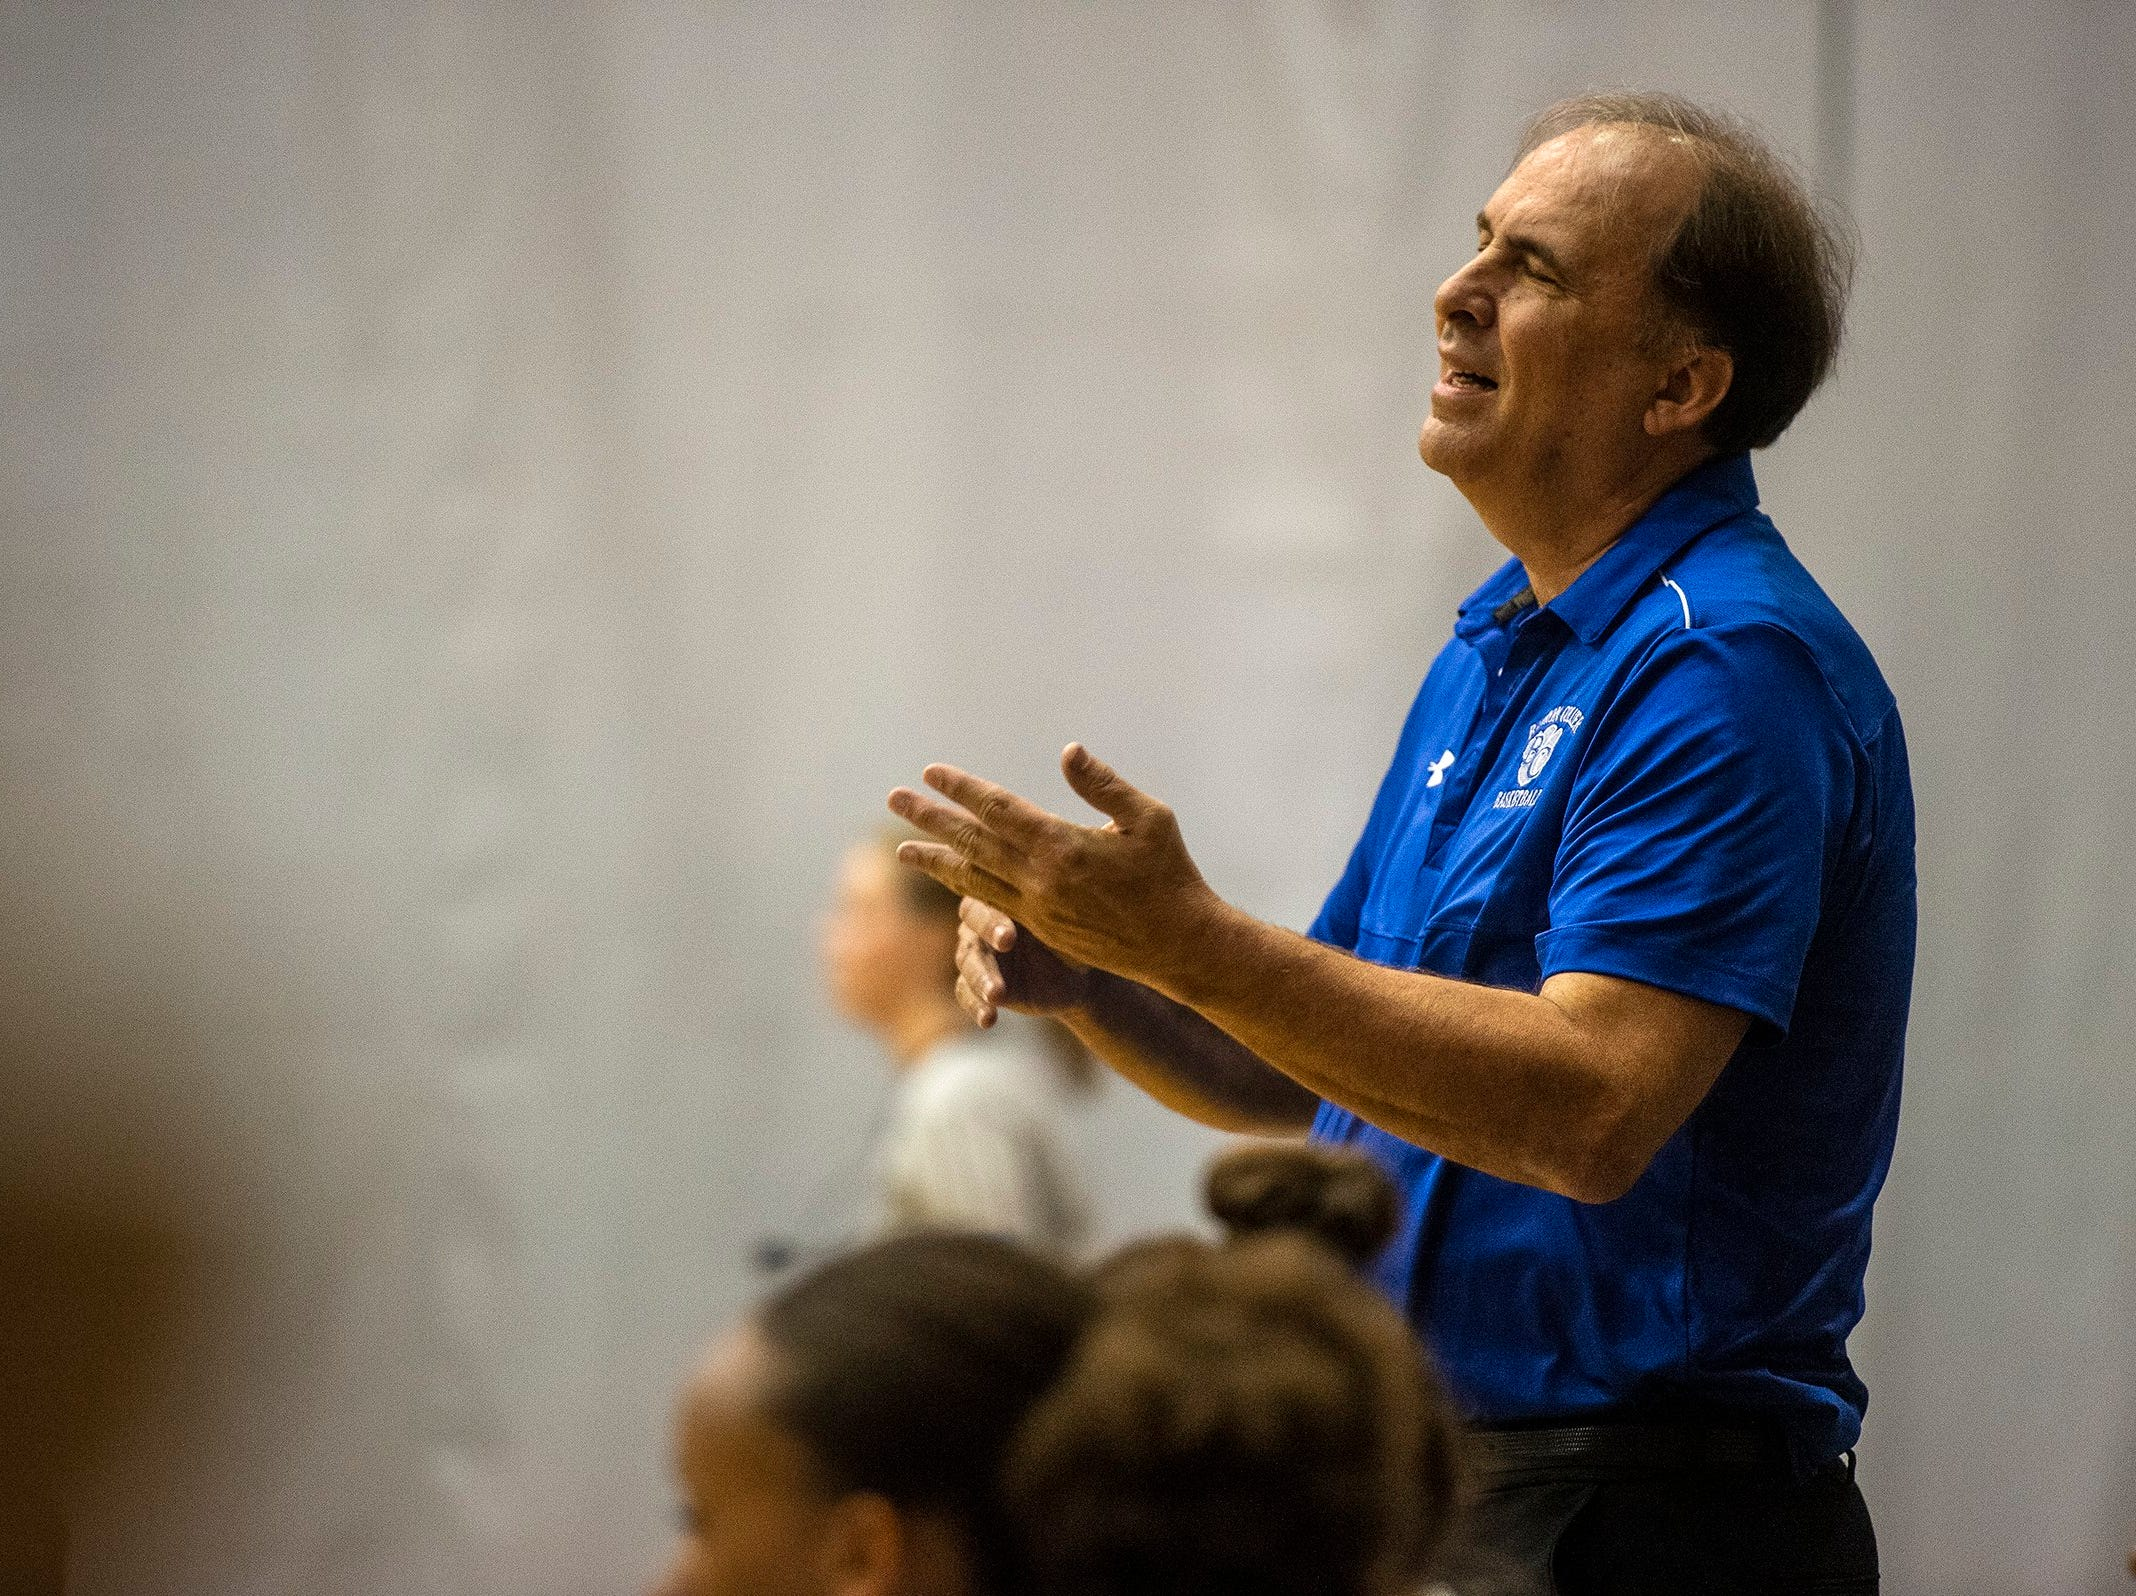 Barron Collier head coach Mike Hamburg reacts to a call during the Class 7A-District 12 Championship against Naples High School in Naples, Fla., on Friday, Feb. 8, 2019.